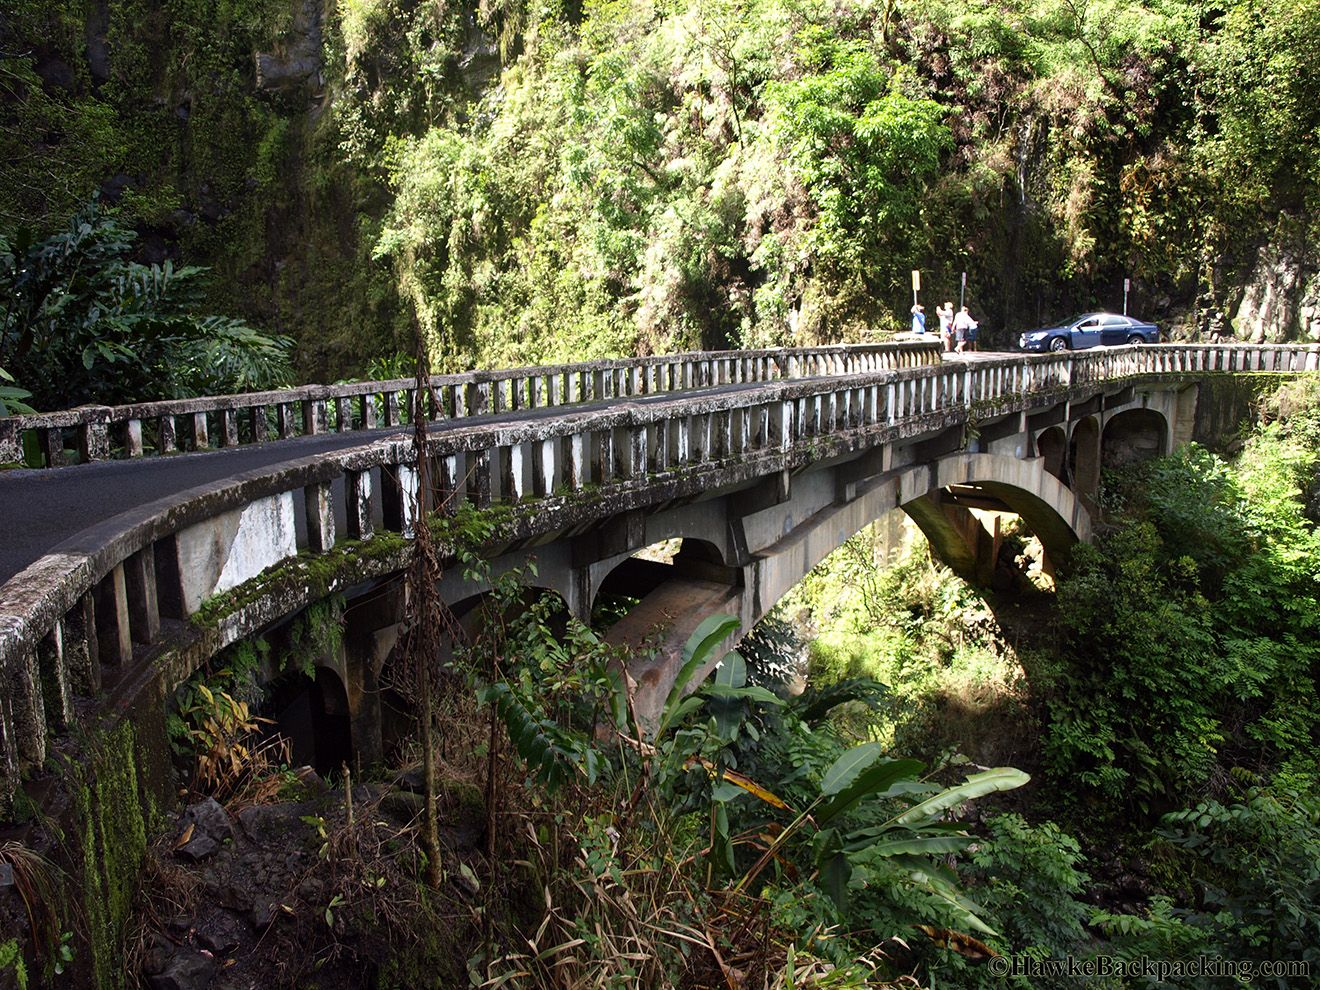 Taking the road to Hana is a must do activity on Maui Take a guide and use a map that shows the best views amp stops Be safe on the Hana Highway Aloha!